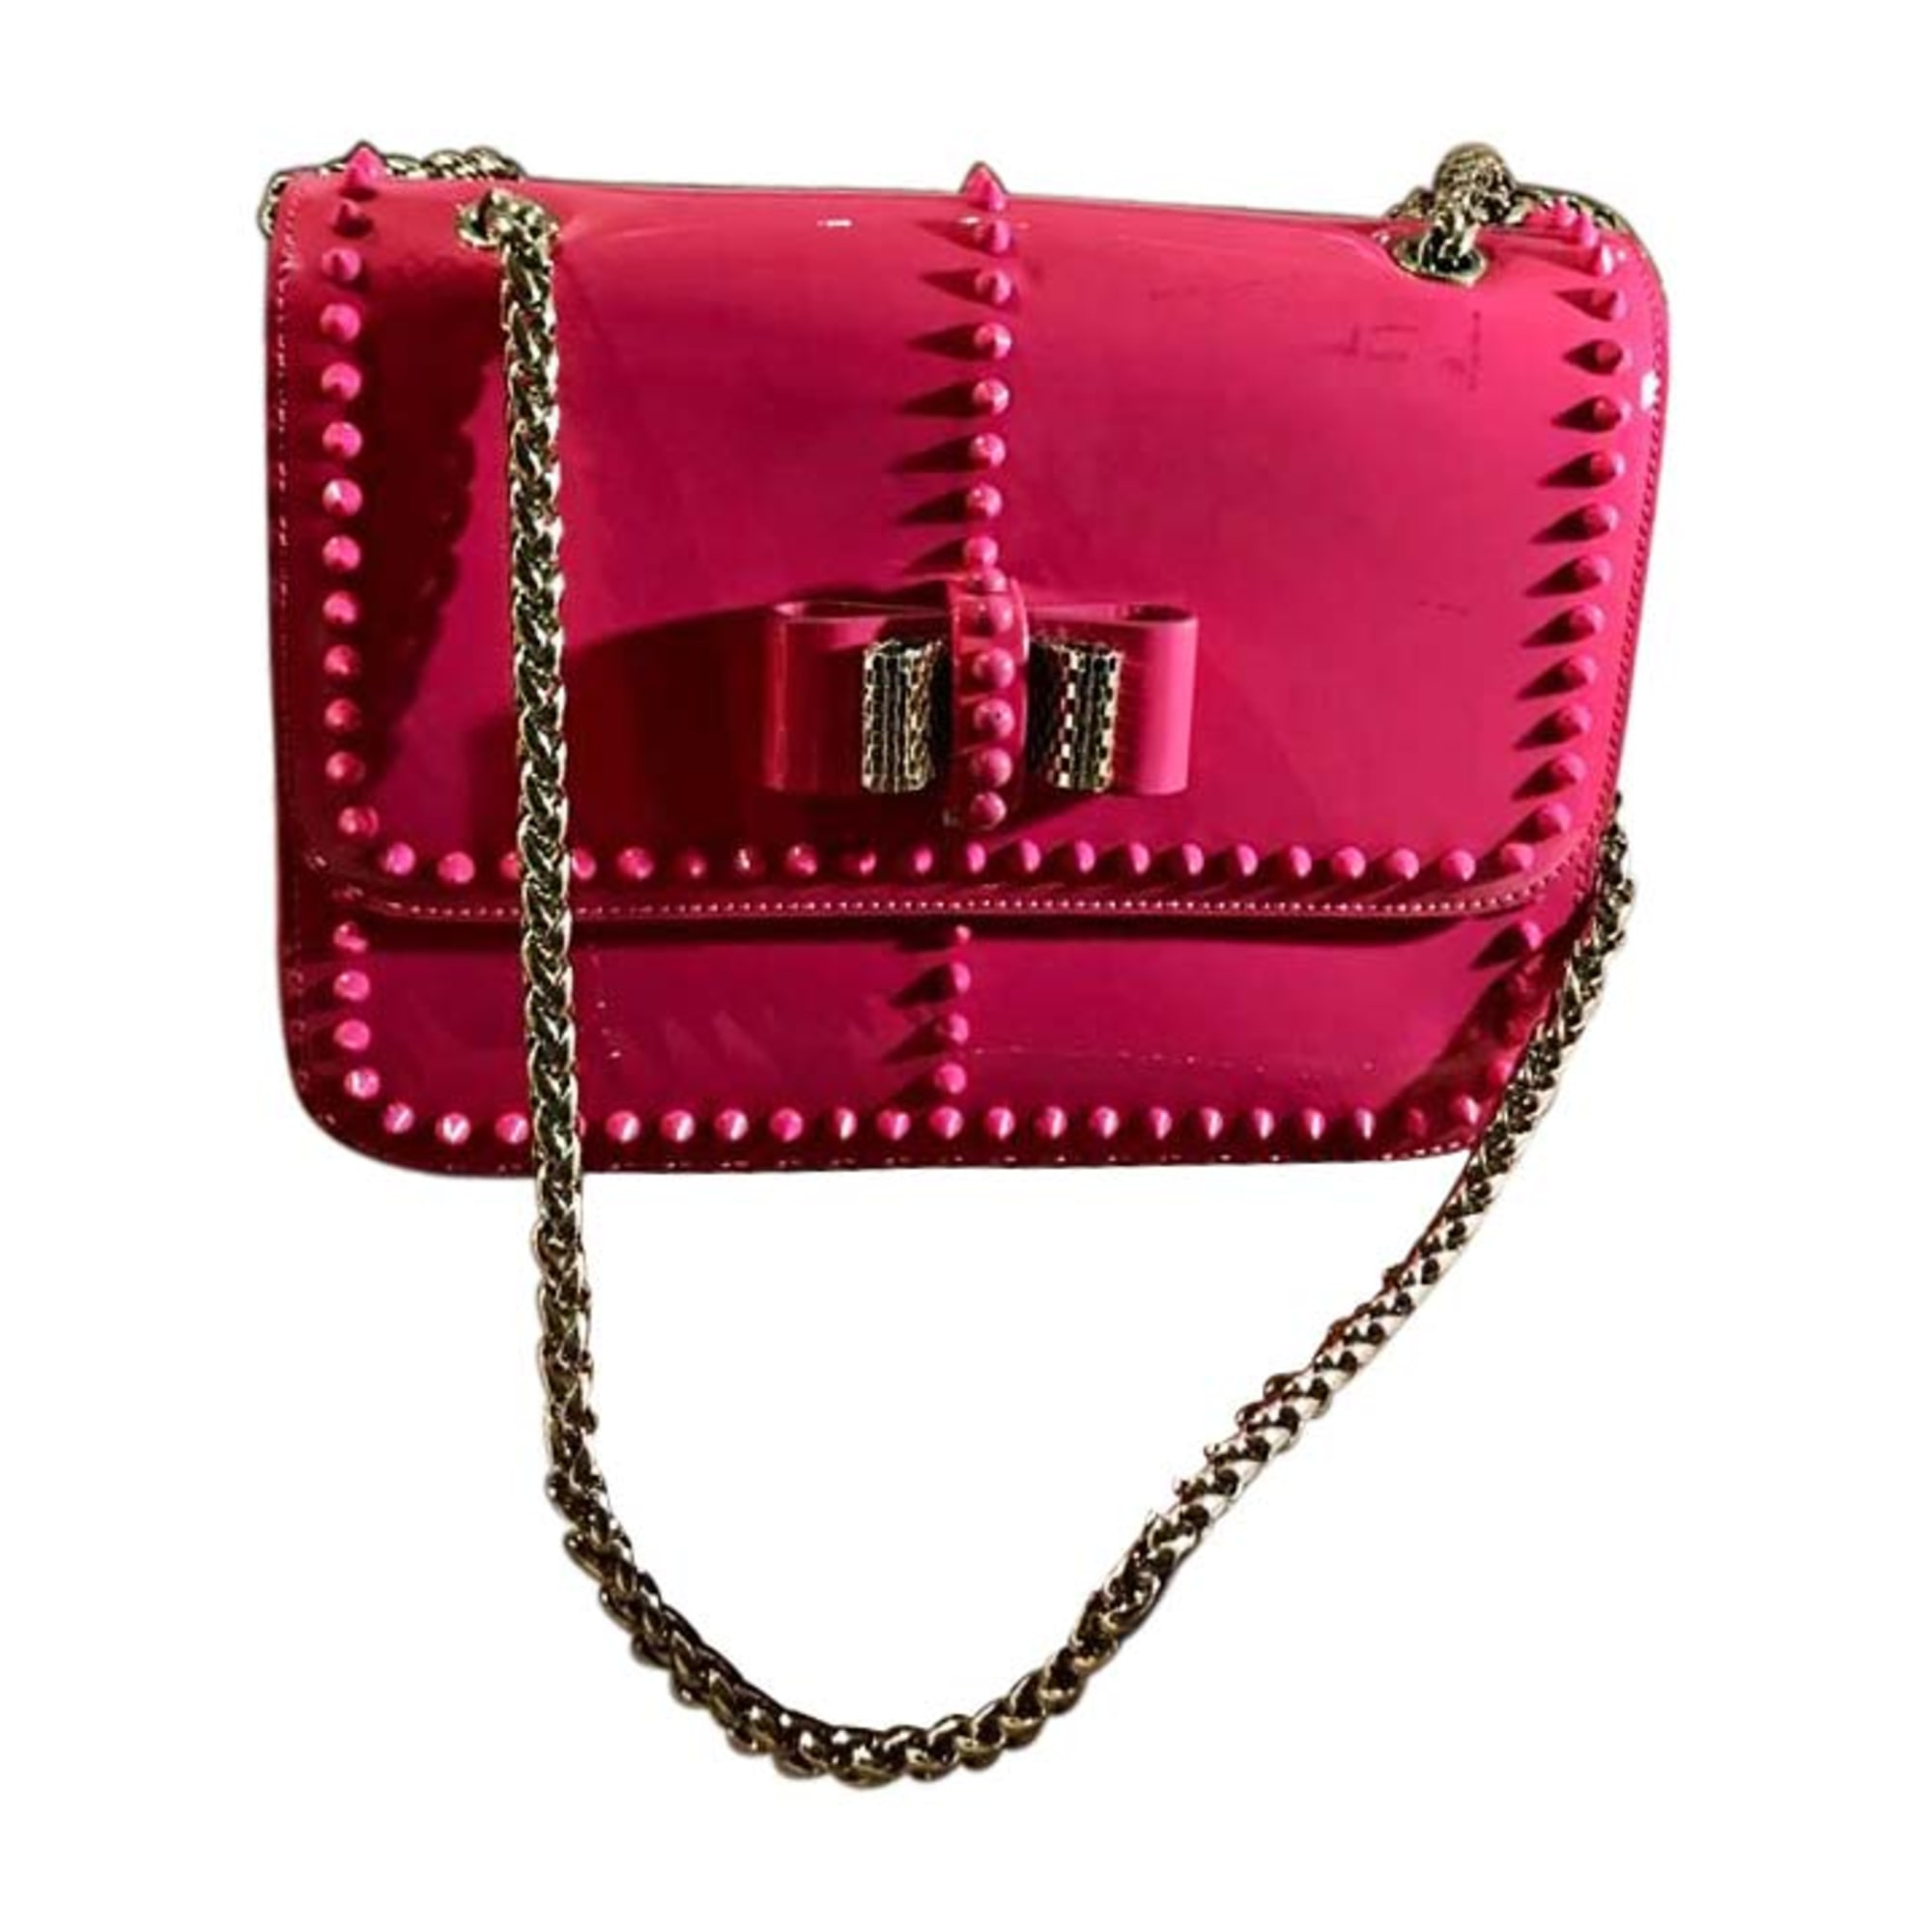 Leather Shoulder Bag CHRISTIAN LOUBOUTIN Pink, fuchsia, light pink